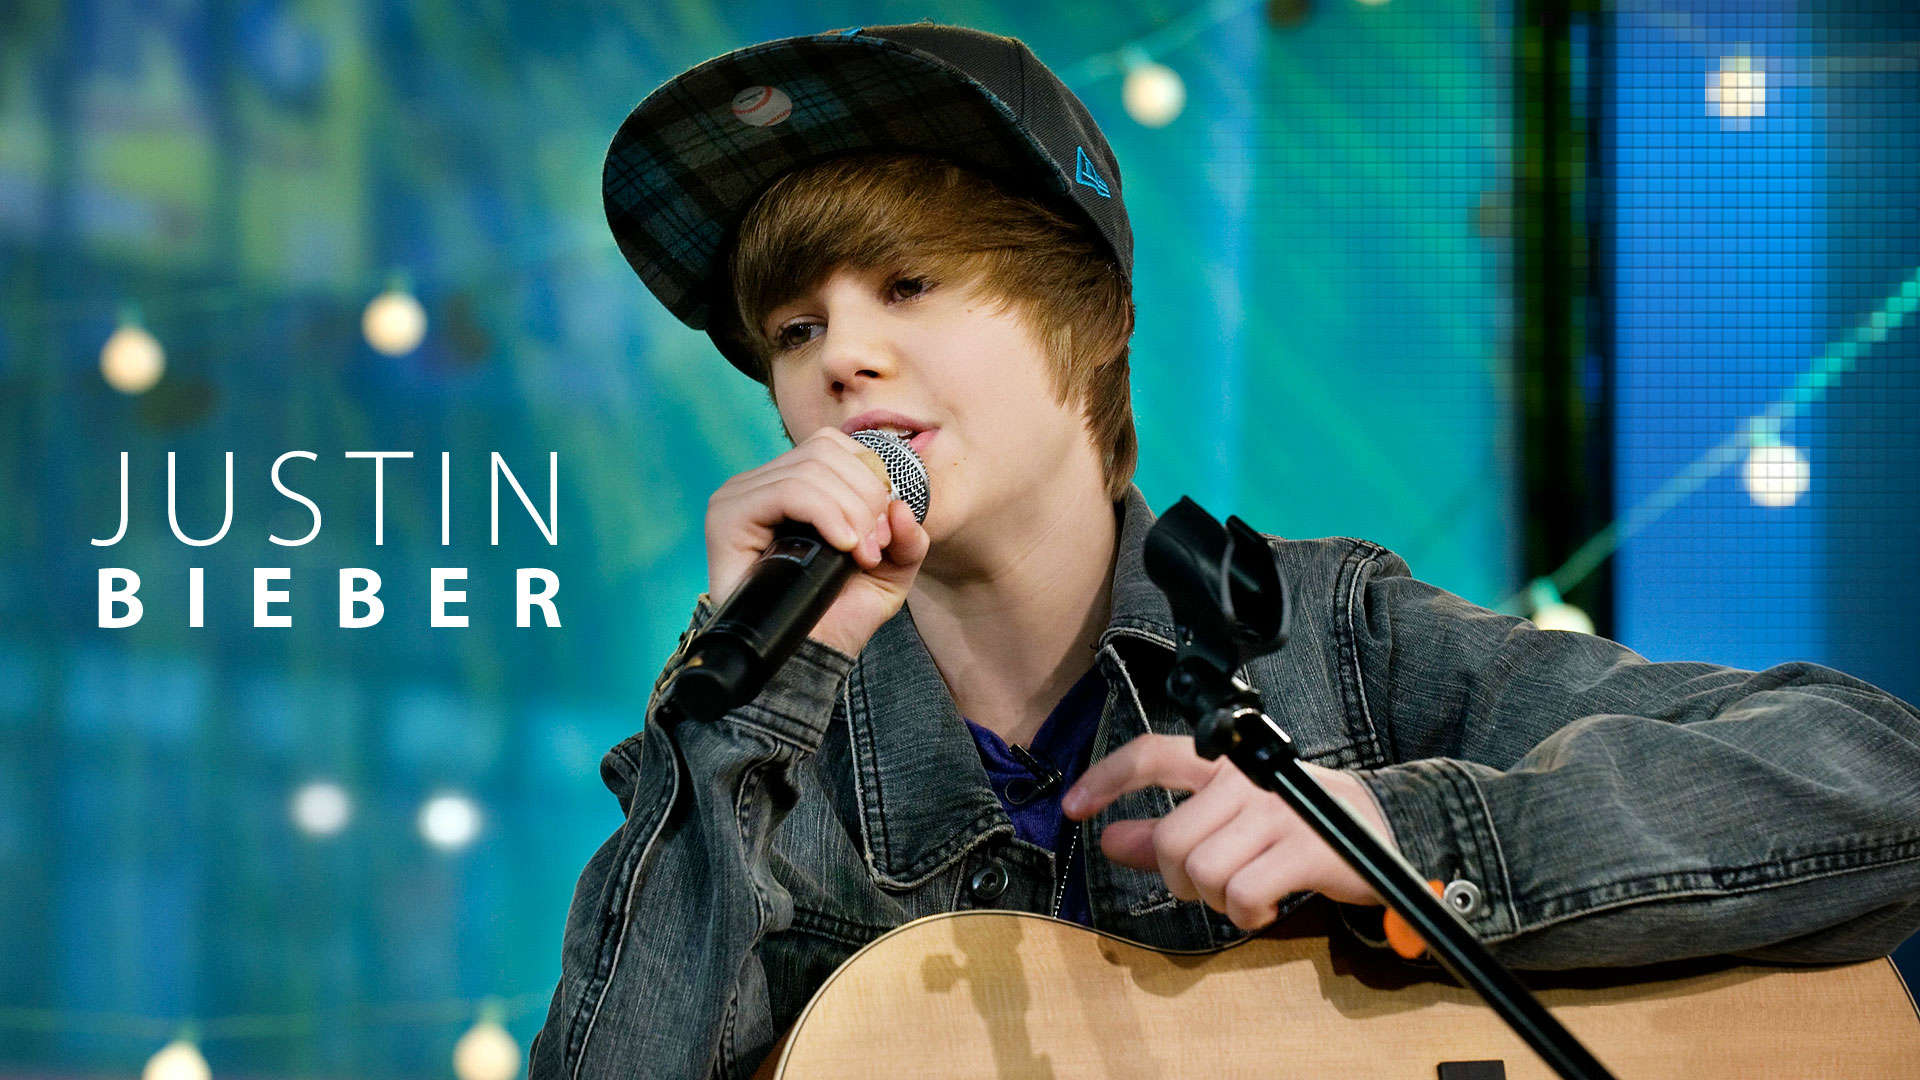 Justin Bieber Wallpapers 2012 Free Download